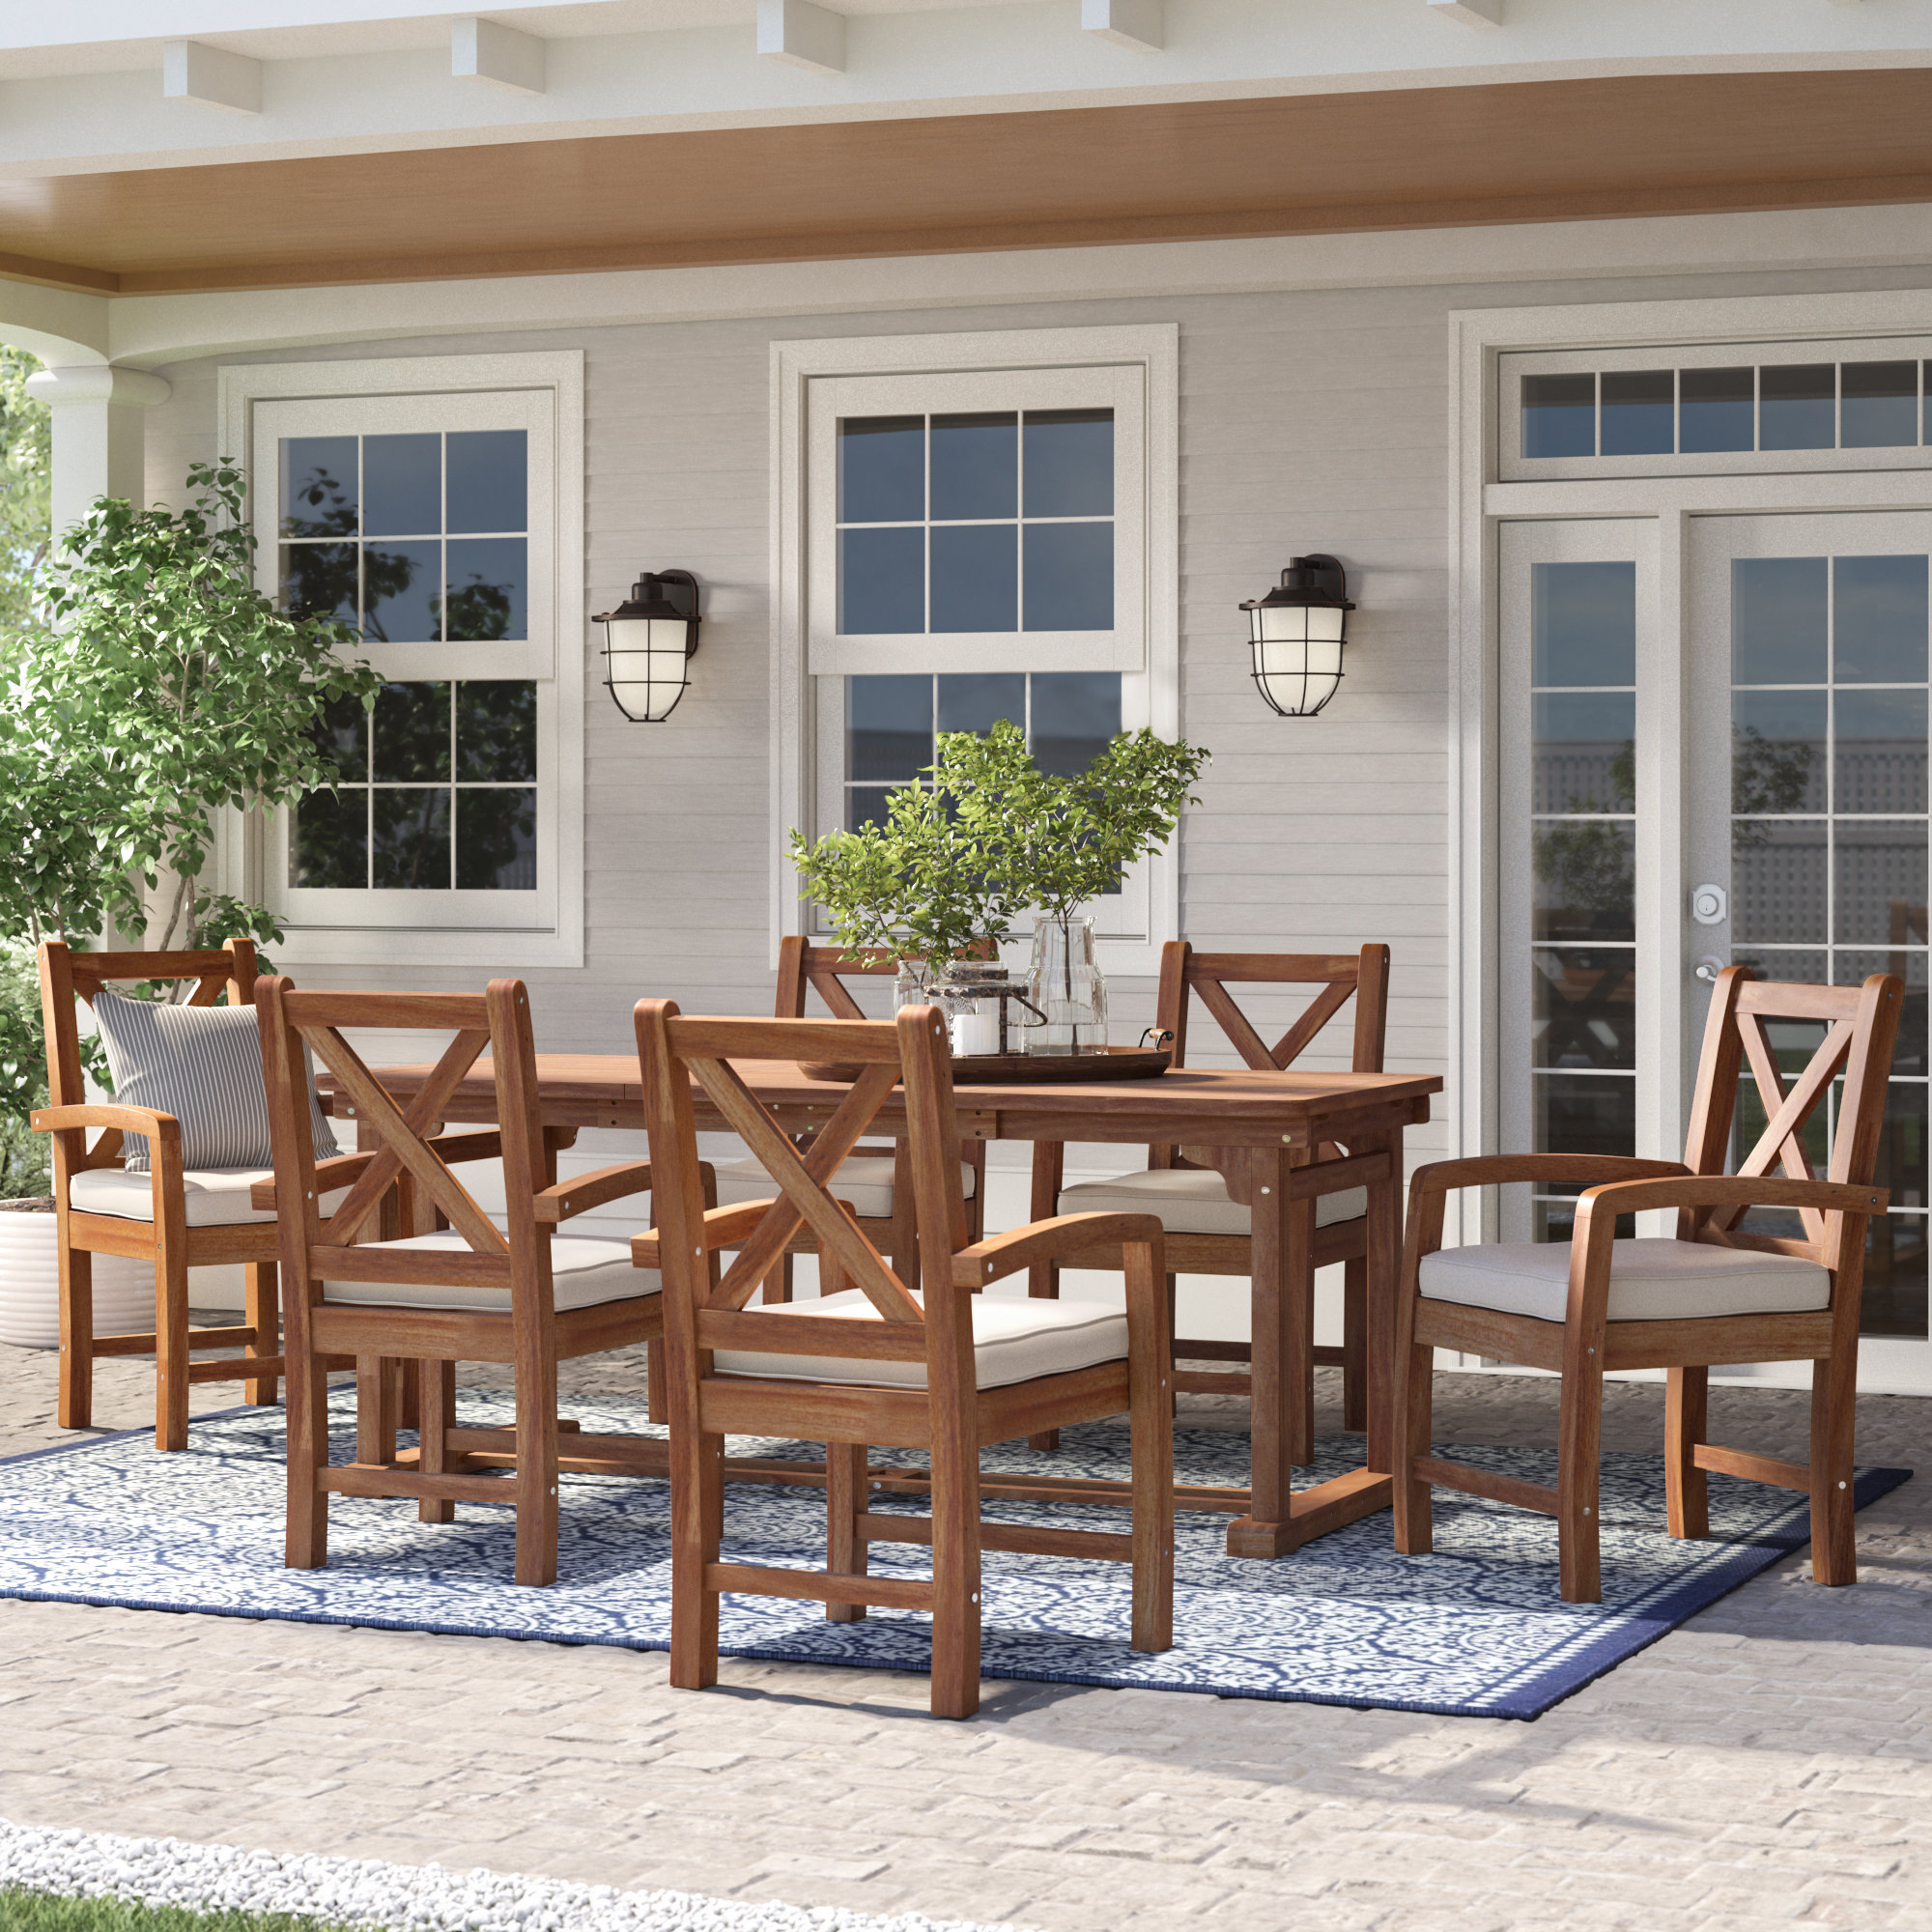 Popular Tim X Back Patio Loveseats With Cushions For Tim X Back Patio 7 Piece Dining Set With Cushions (View 6 of 20)